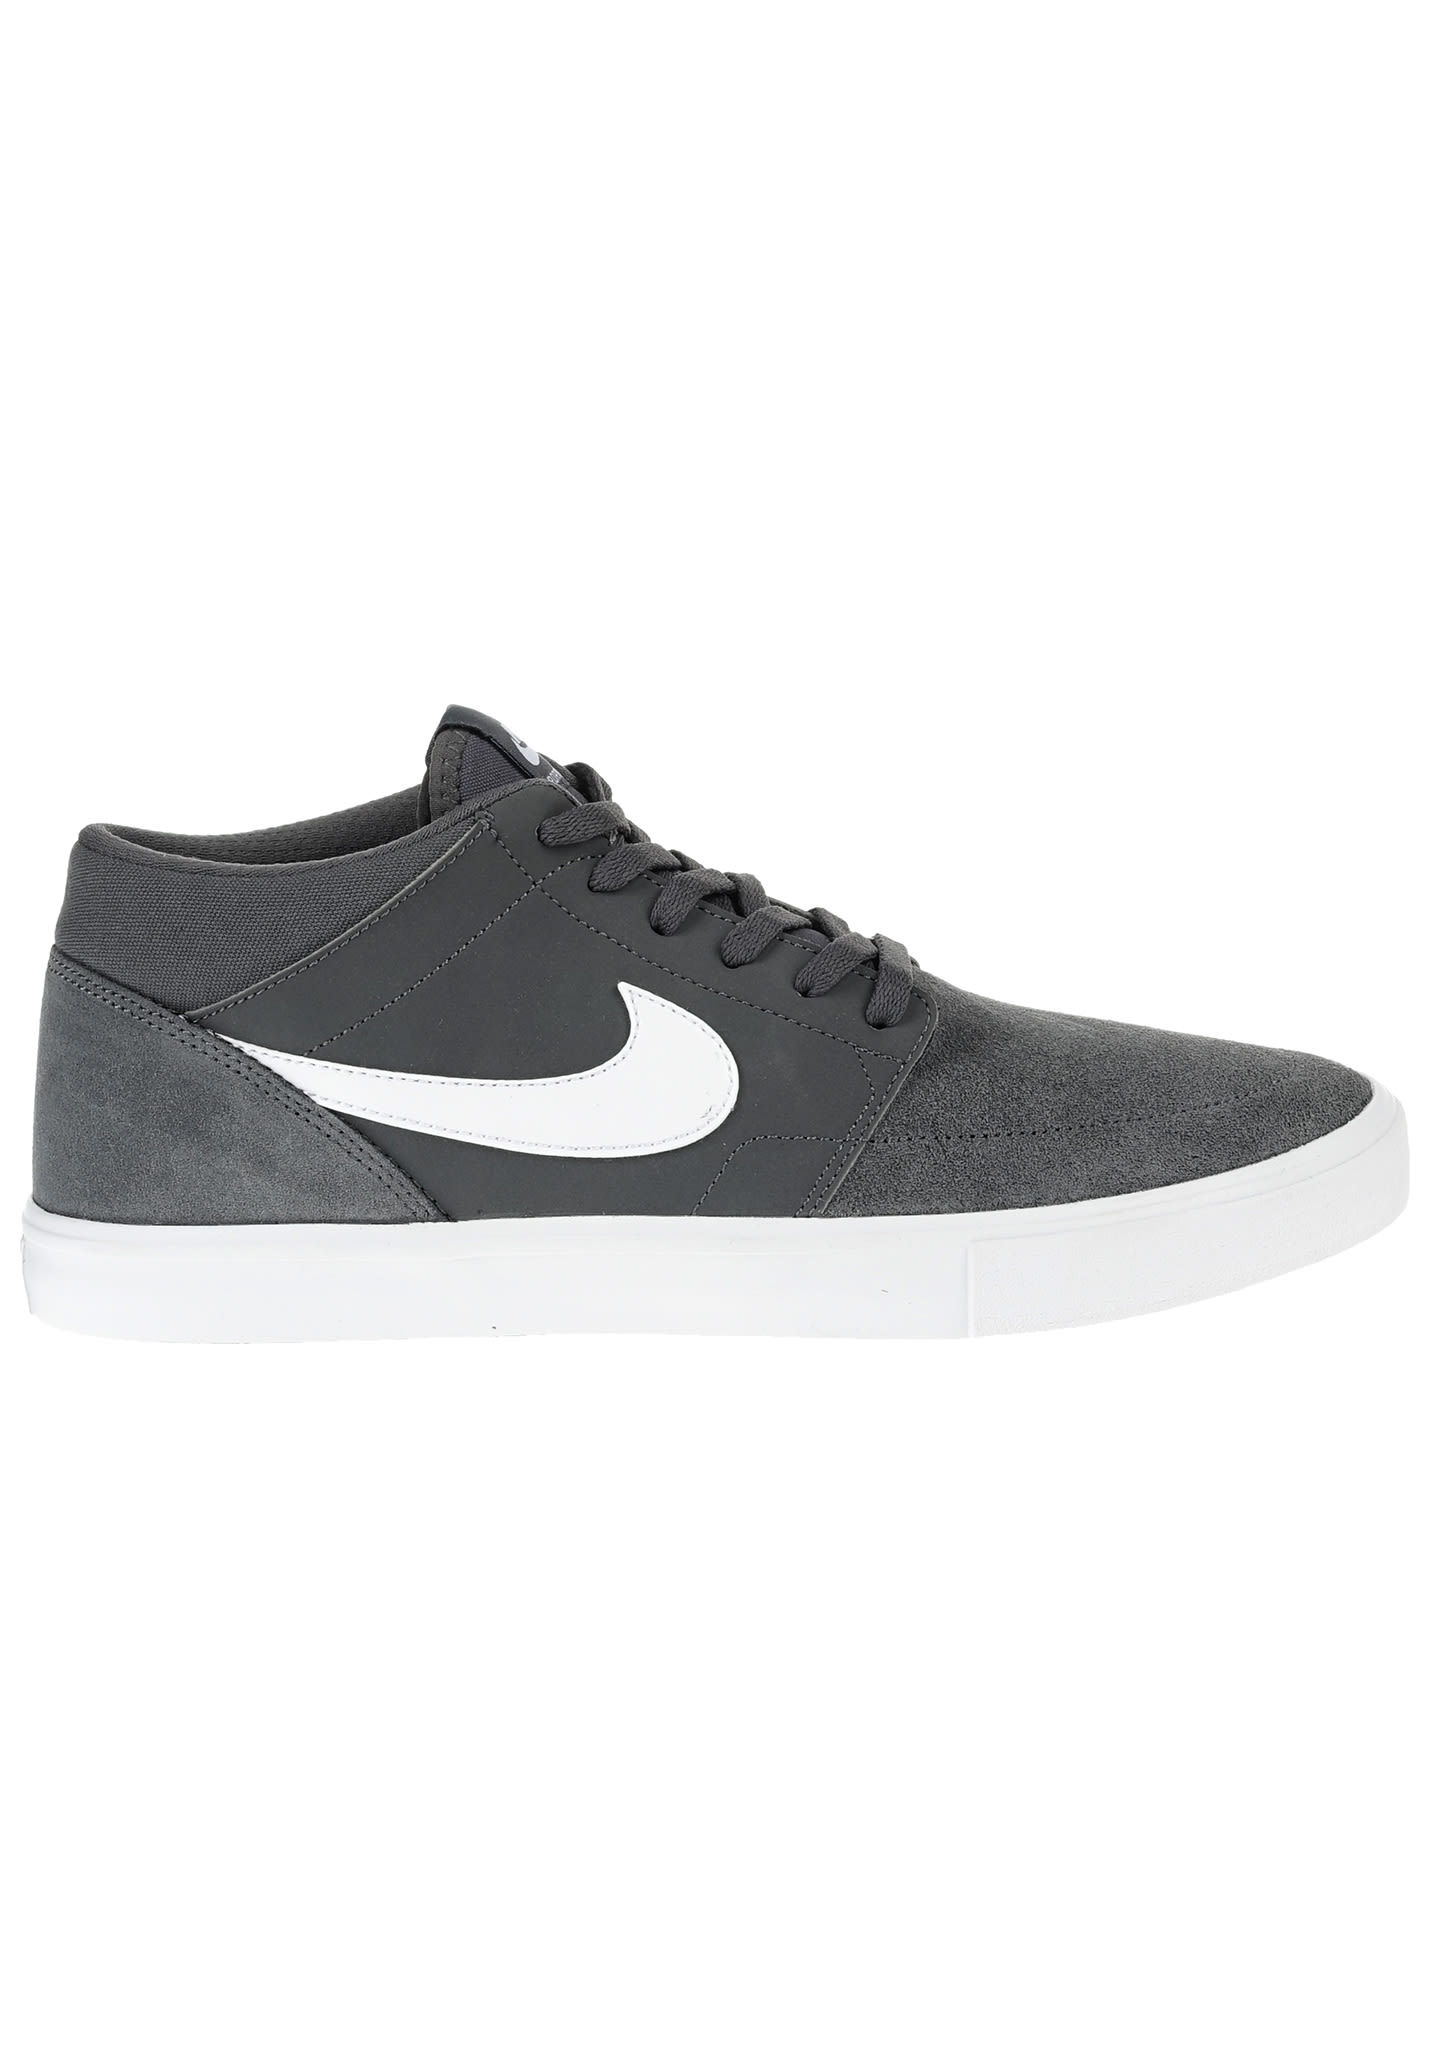 NIKE SB Portmore II Solar Mid - Sneakers for Men - Grey - Planet Sports 9152bf3701a0